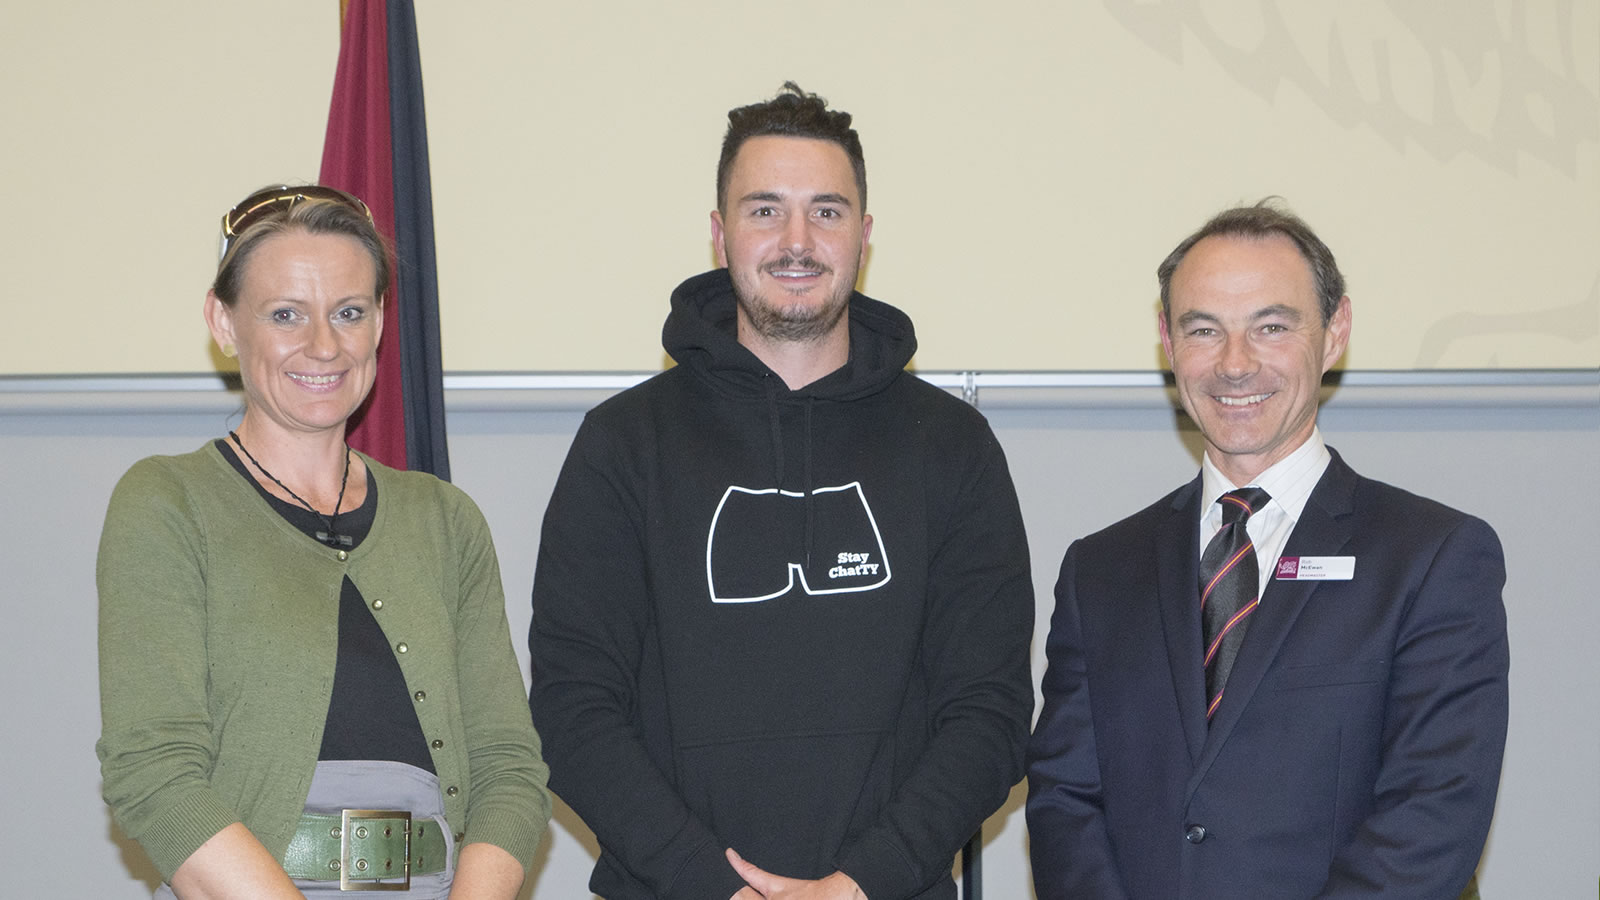 L–R Rebecca Thomson (Lifeline Tasmania), Mitch McPherson (Speak Up! Stay ChatTY) and Dr Rob McEwan (Headmaster). (large)